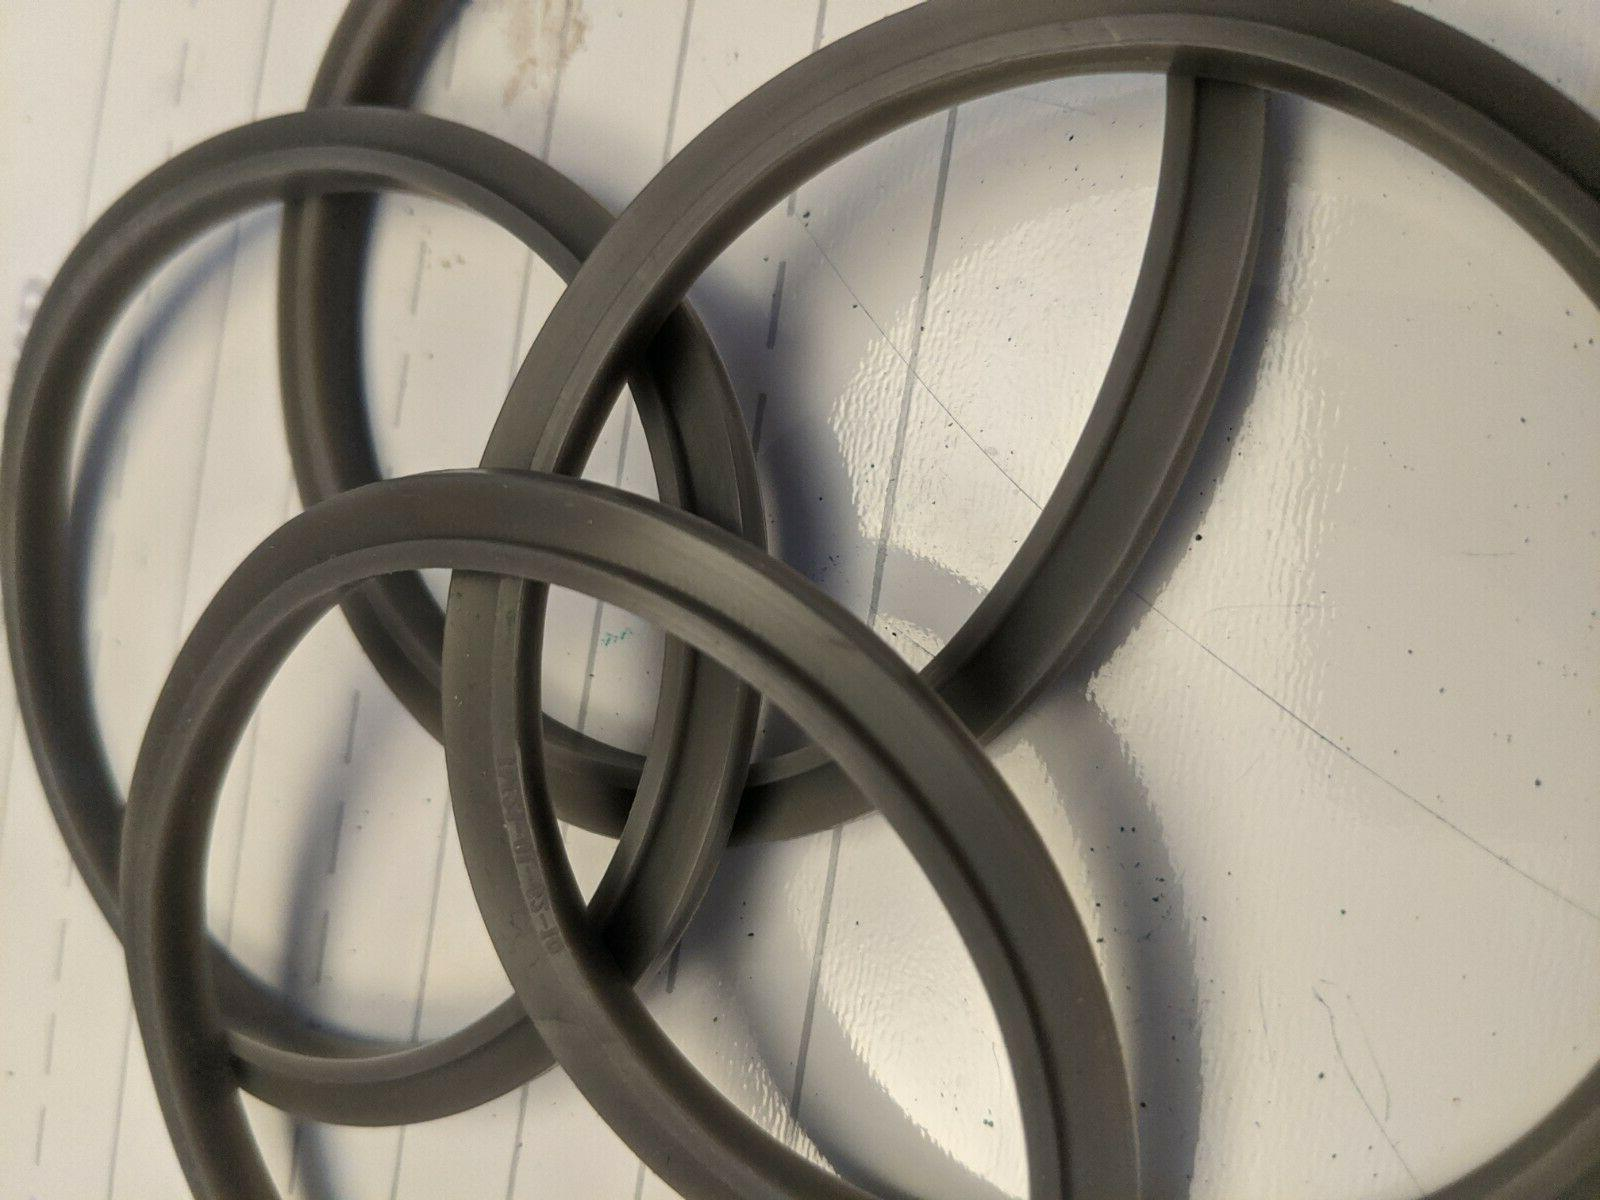 4 Gaskets with Compatible with 900W Blender/Extractor